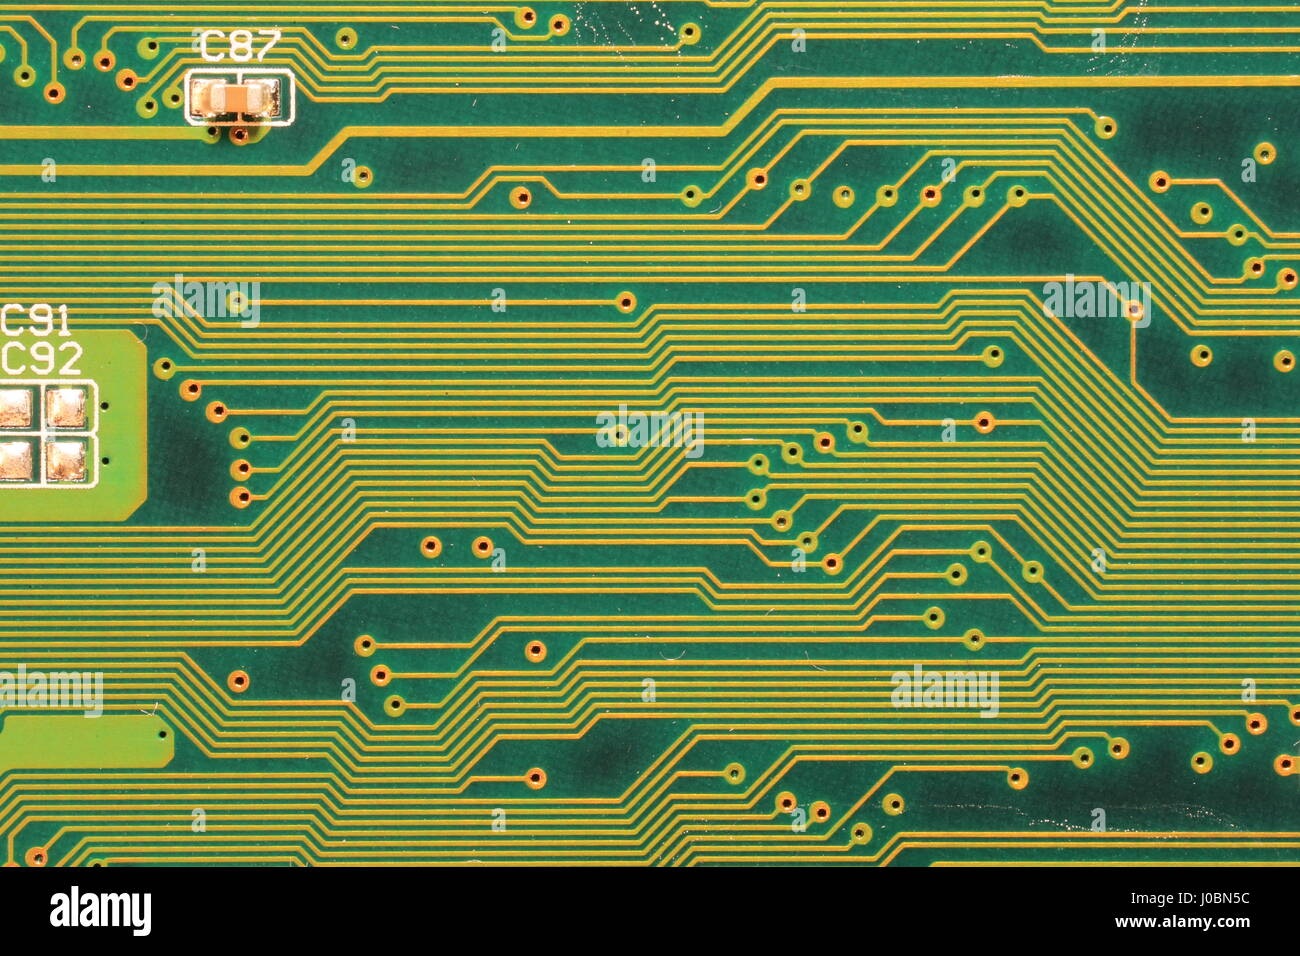 High Tech Manufacturing Stock Photos Is The Central Printed Circuit Board Pcb In Many Modern Computers Computer Showing Close Up Detail Of Circuitry